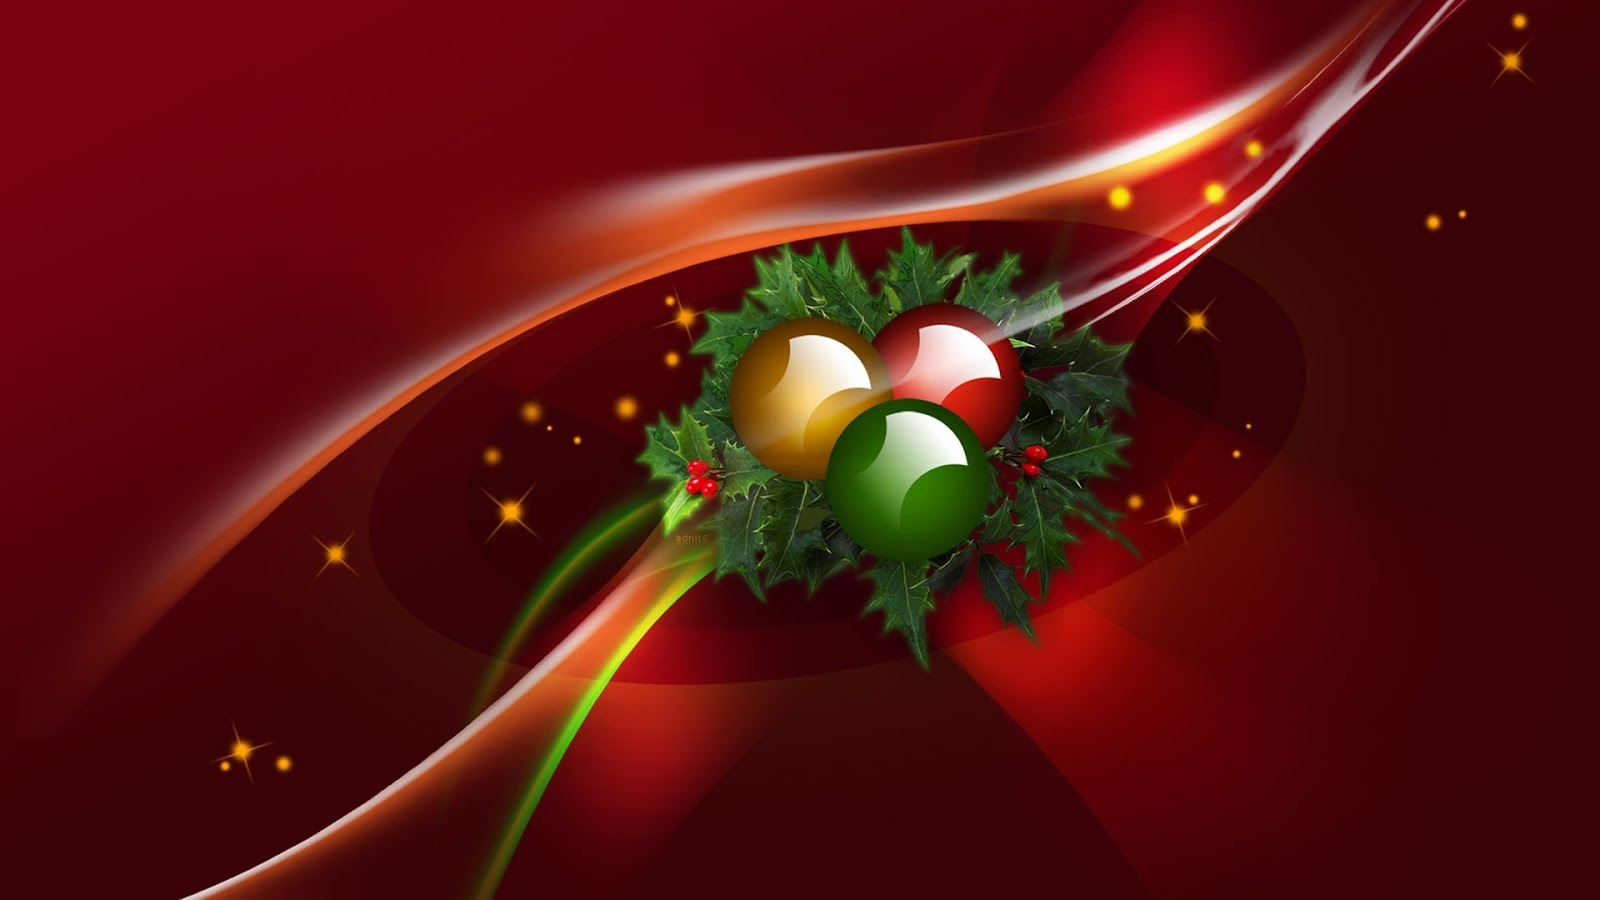 Happy Christmas Full HD 50 Wallpapers 1920x1080